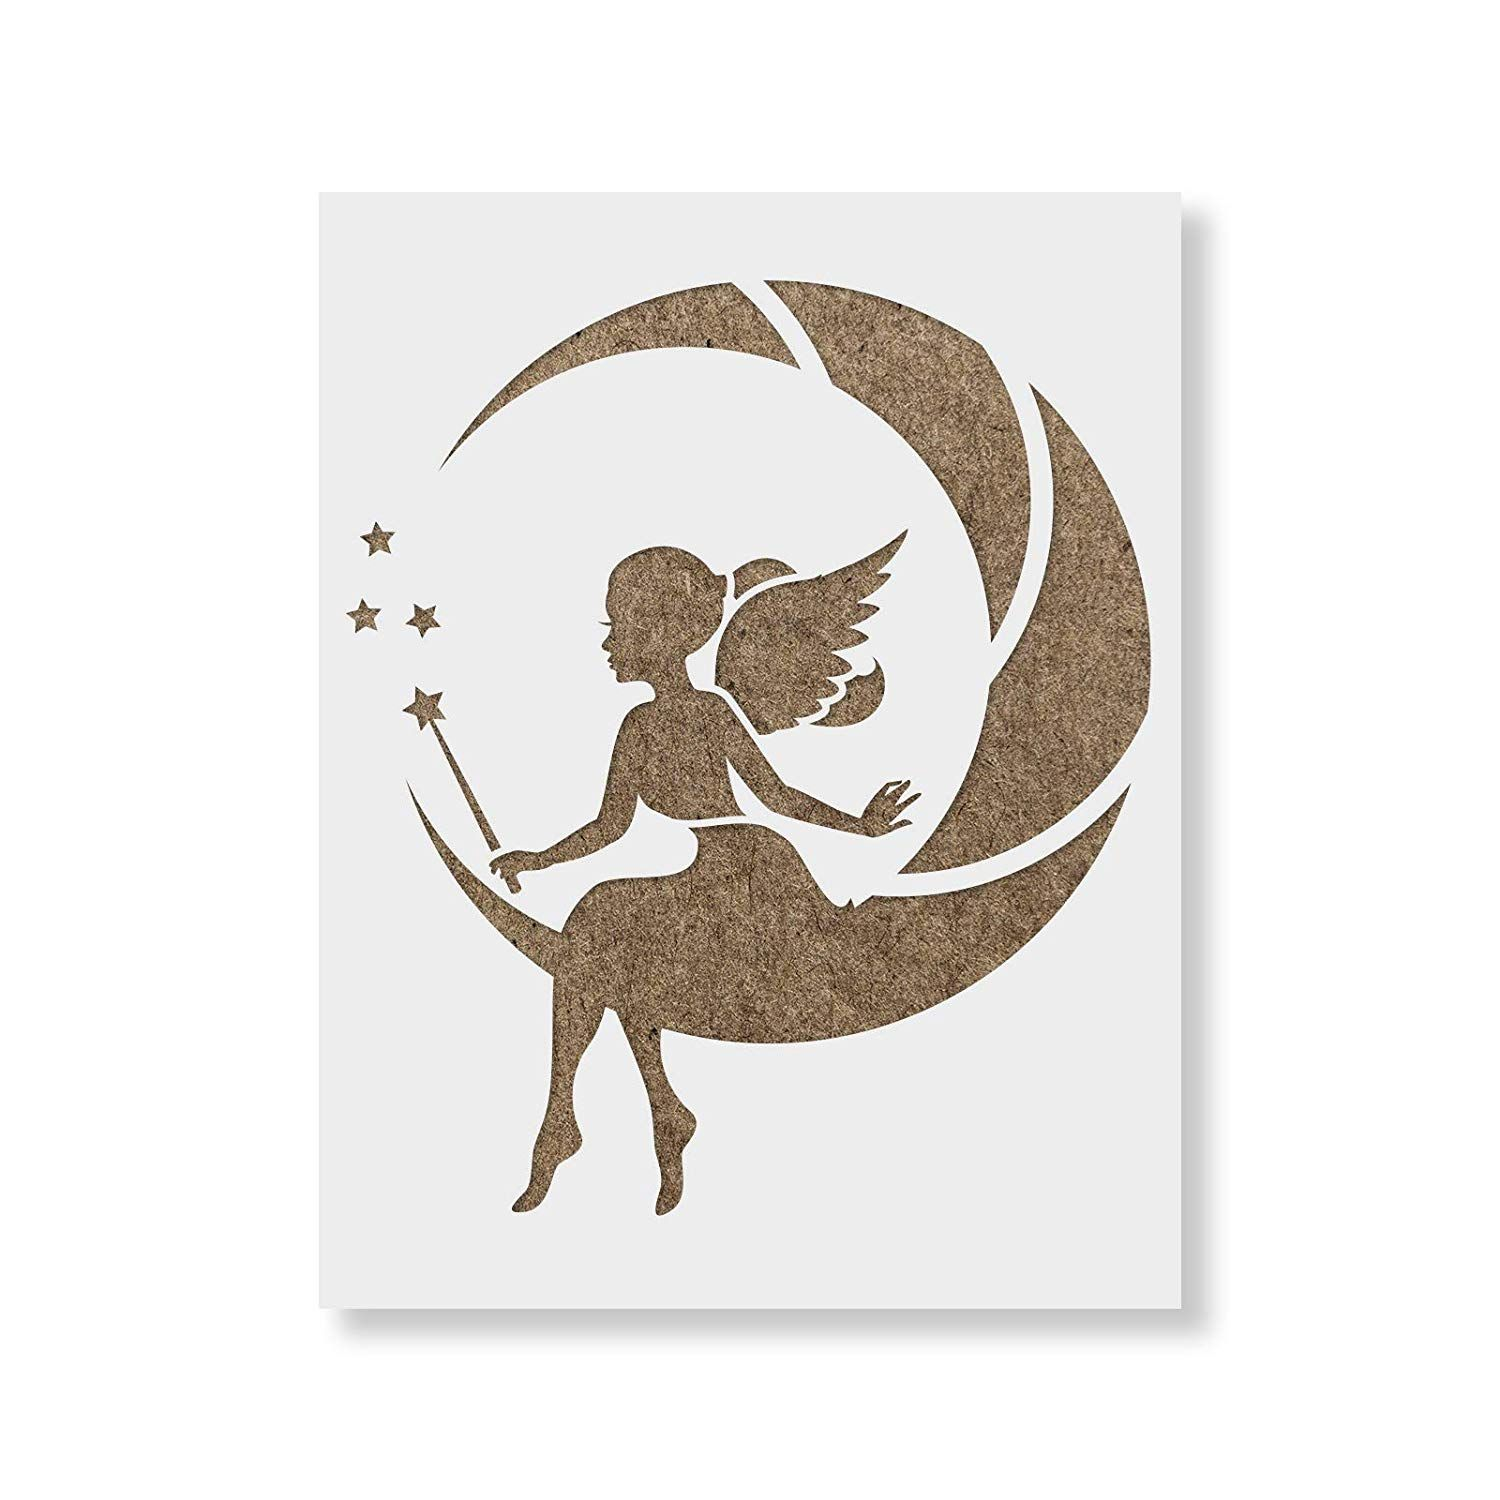 Fairy Moon Stencil Template for Walls and